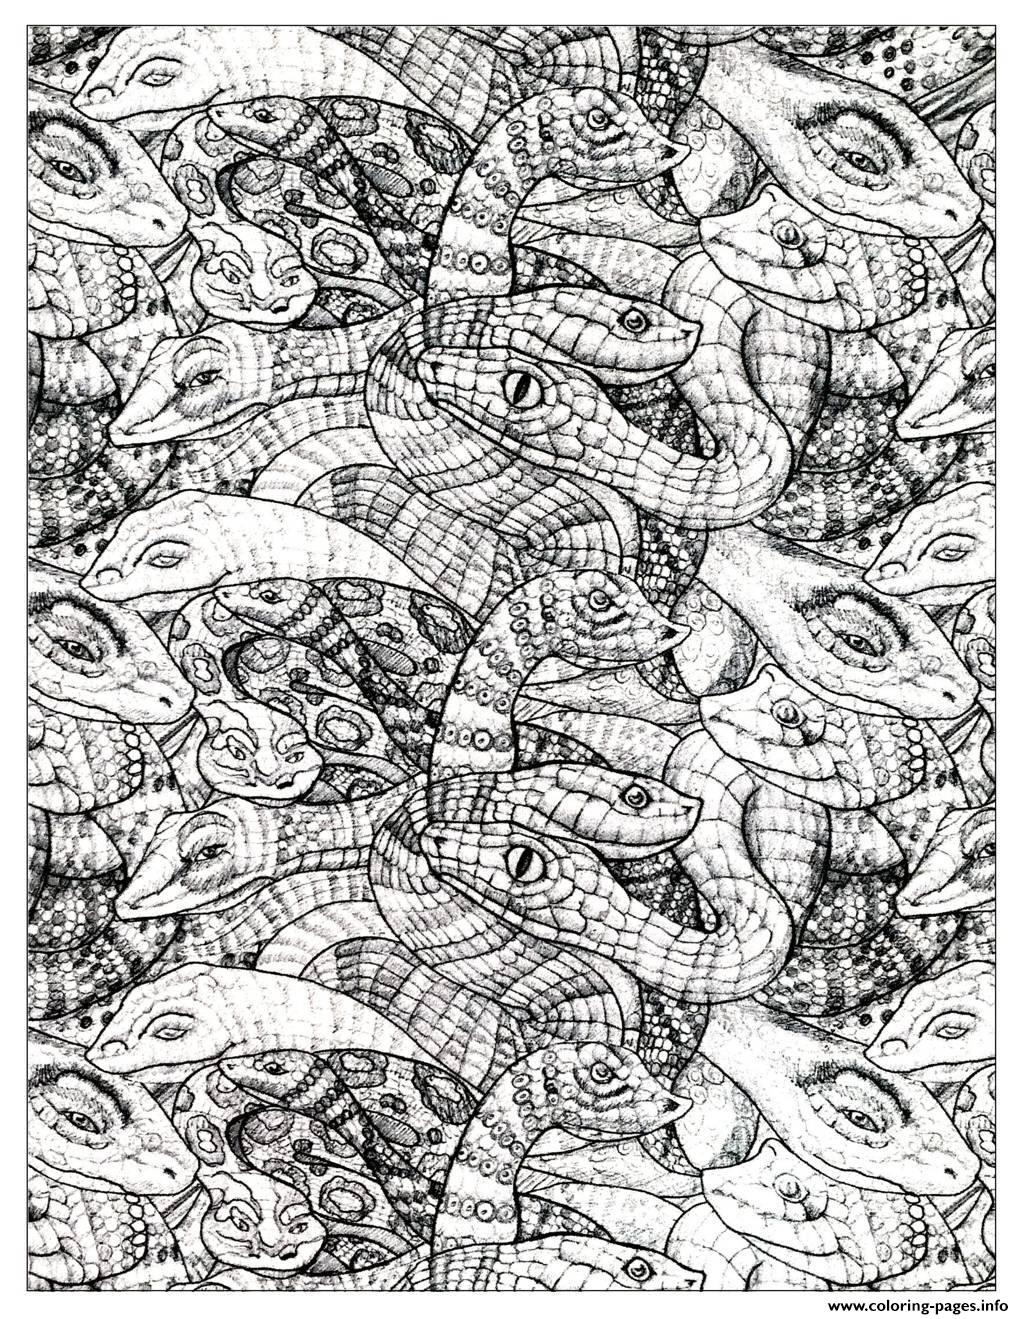 adult snakes 2 coloring pages - Free Printable Adult Coloring Pages 2